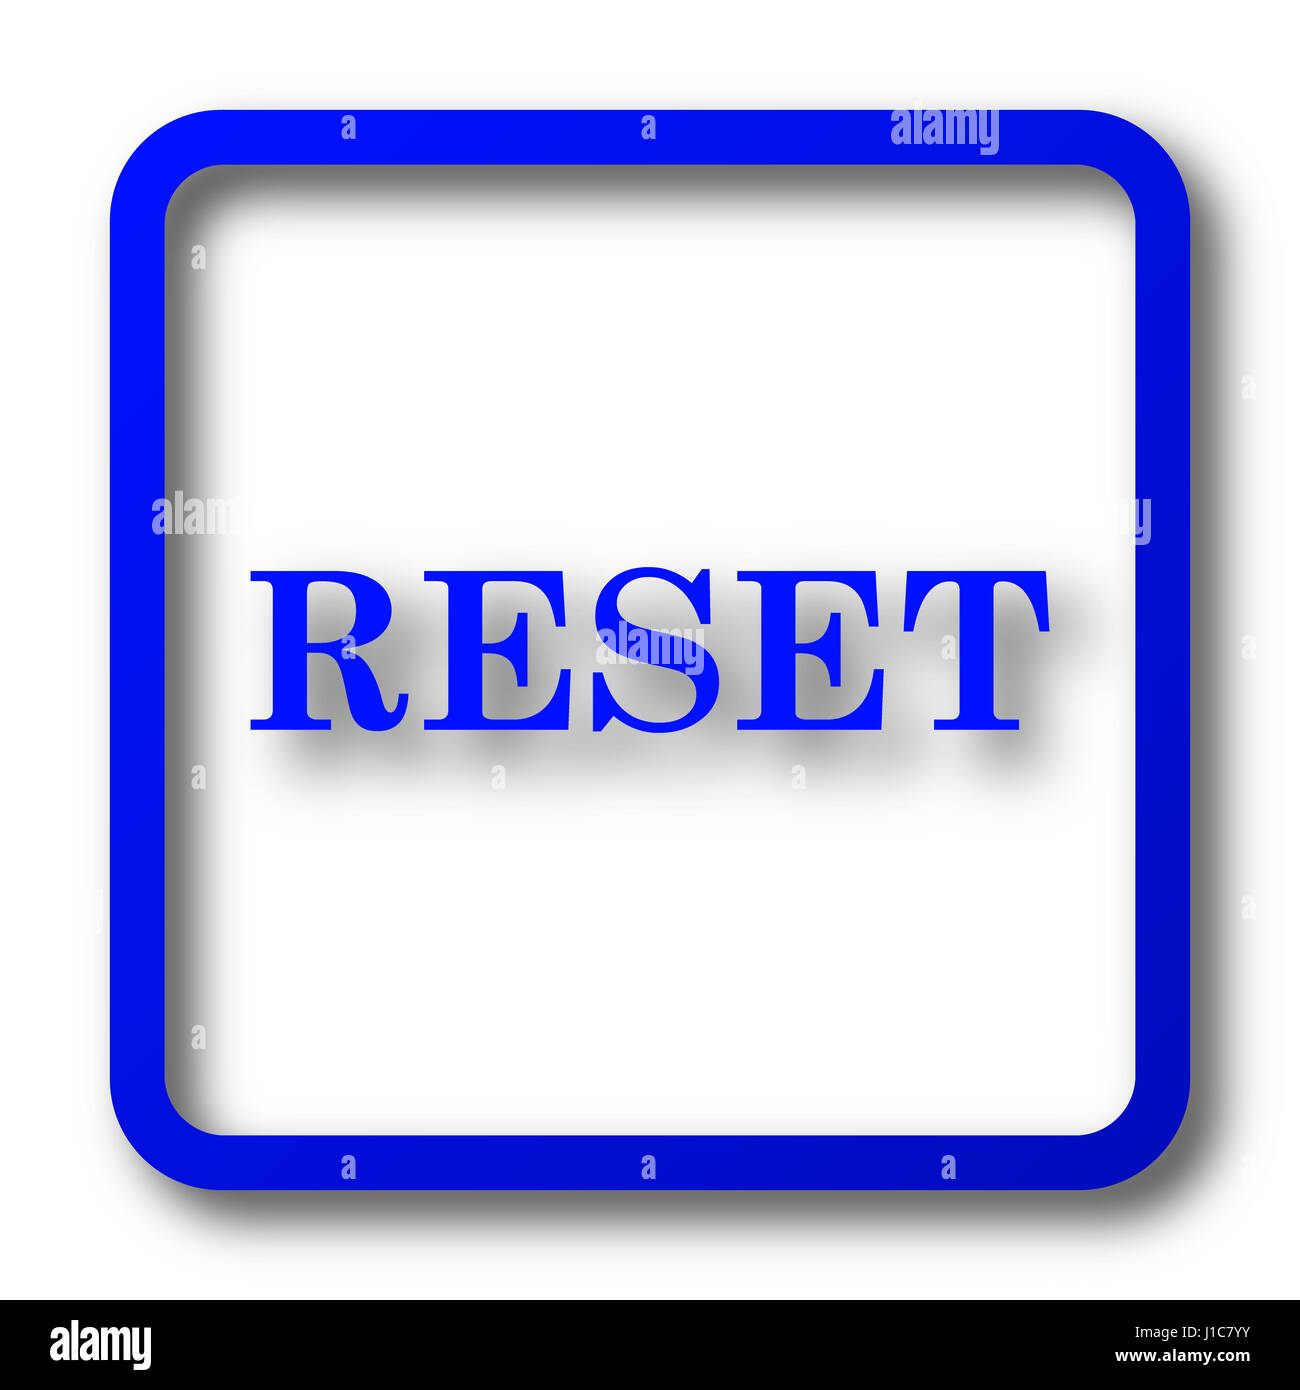 Reset icon png